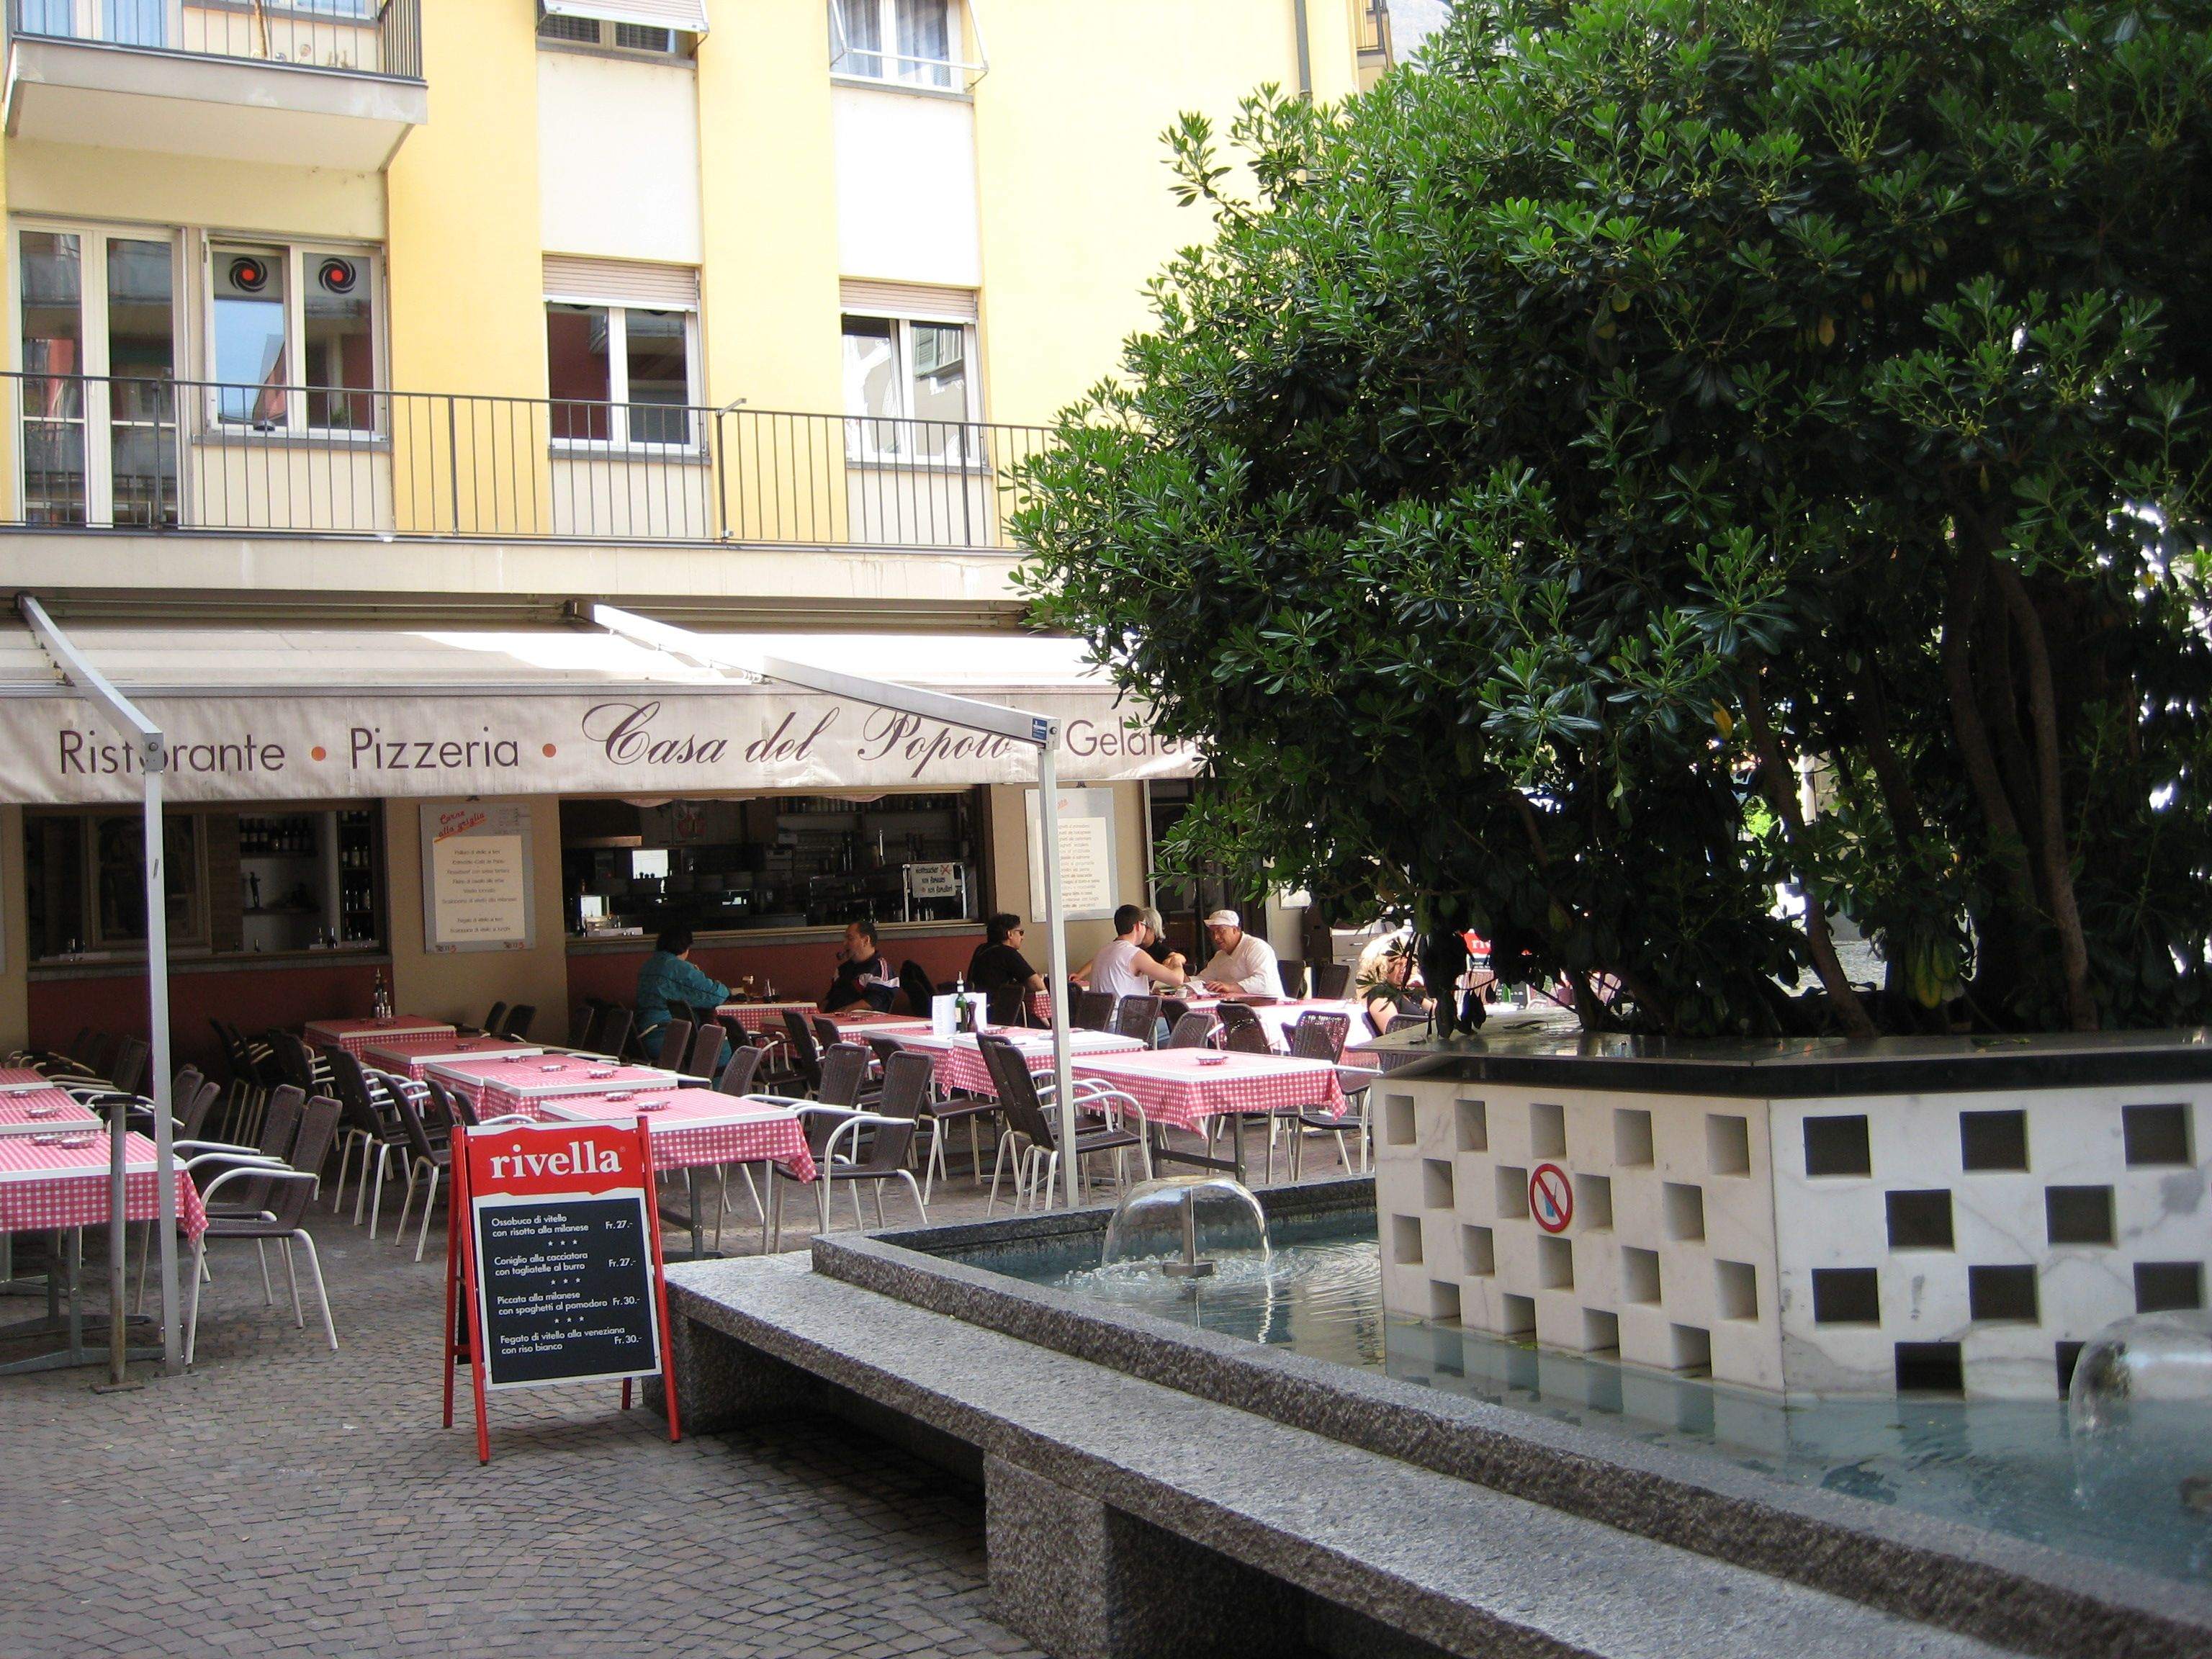 Pizzeria in Locarno, where Andreas and Emilia have lunch after Andreas picks her up at Karla's gallery